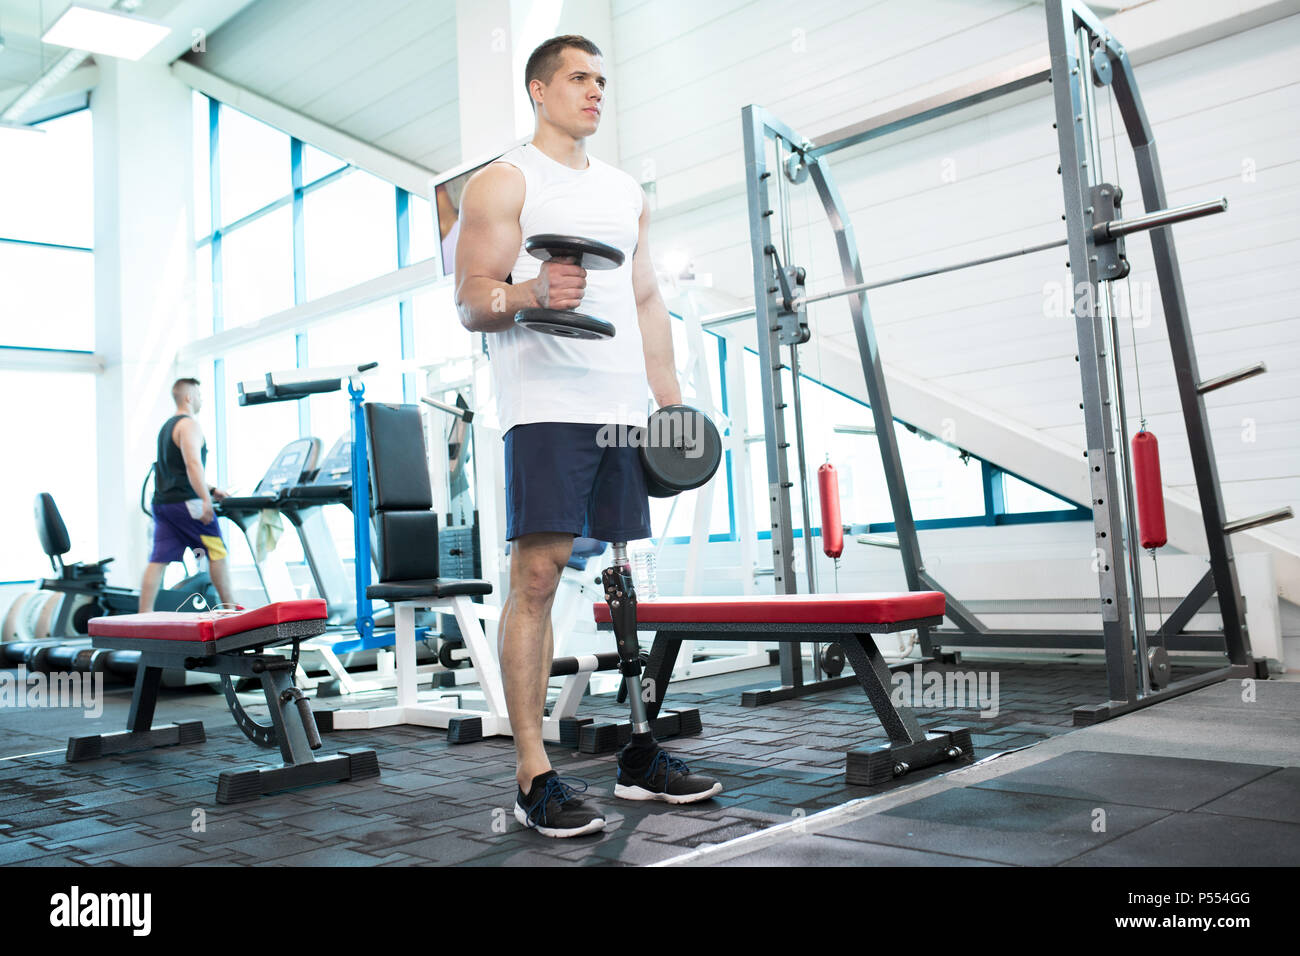 Man with Prosthetic Leg Training in Gym - Stock Image